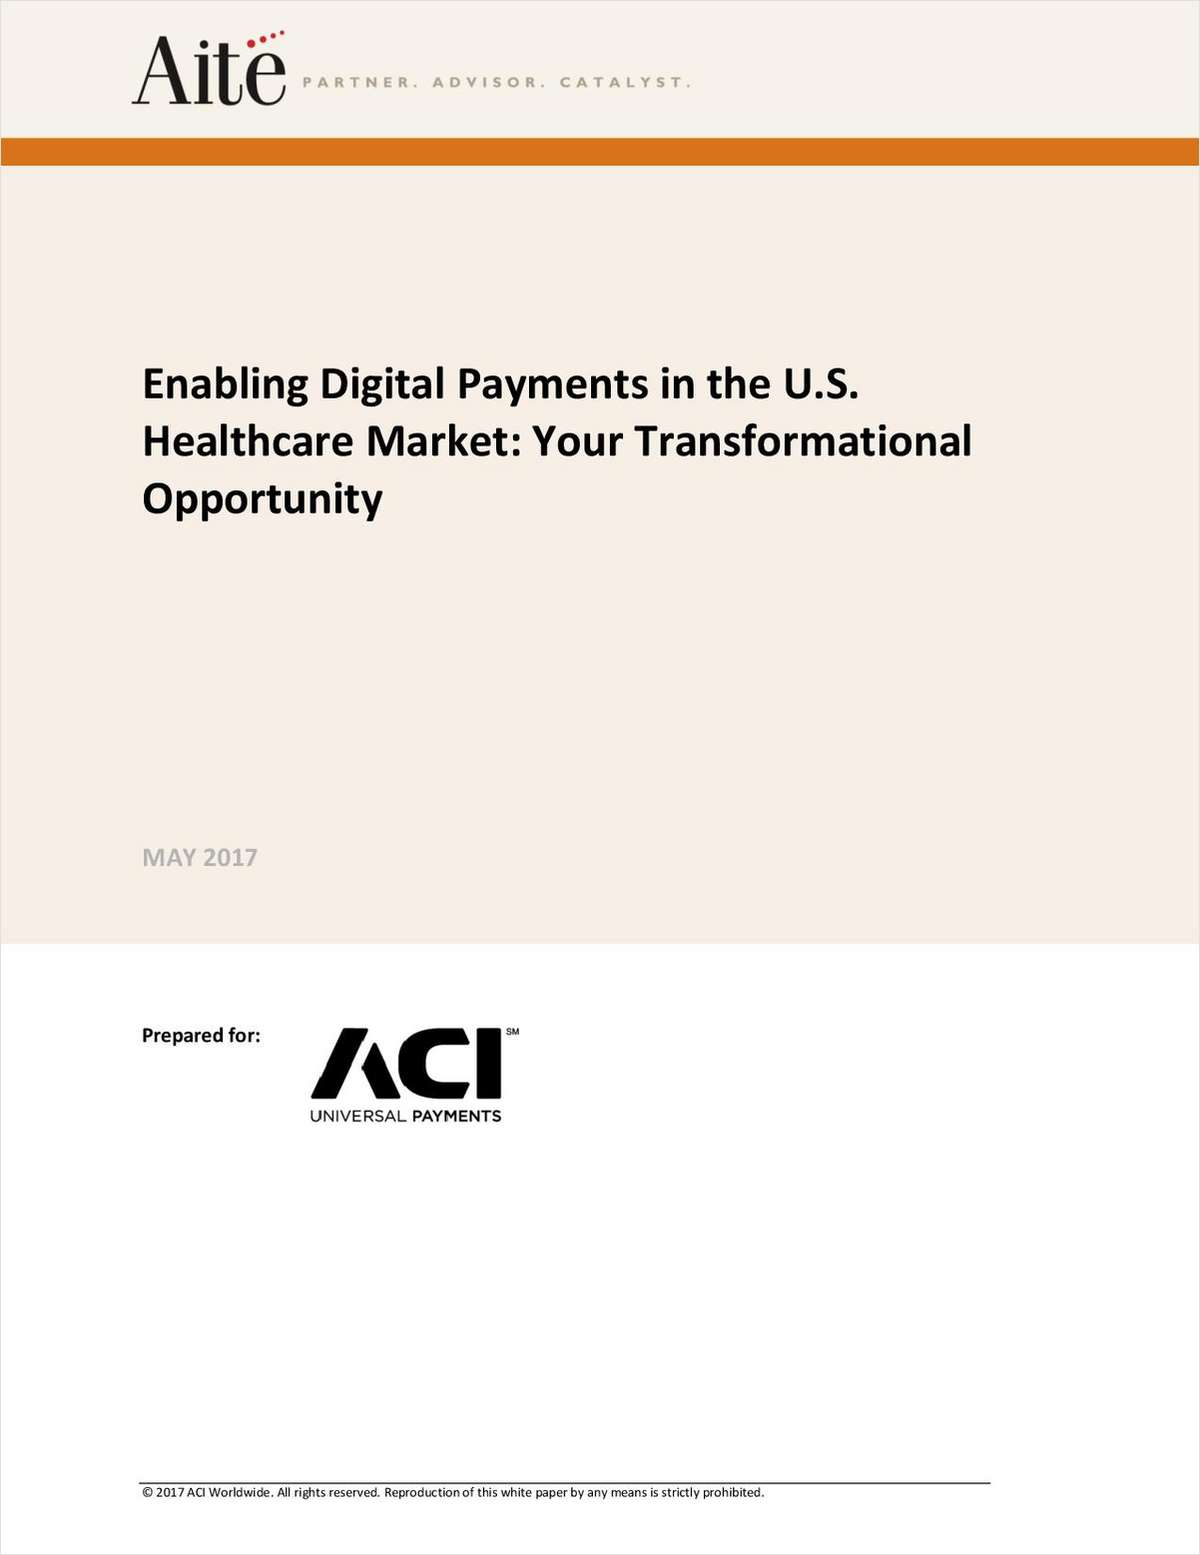 Enabling Digital Payments in the U.S. Healthcare Market